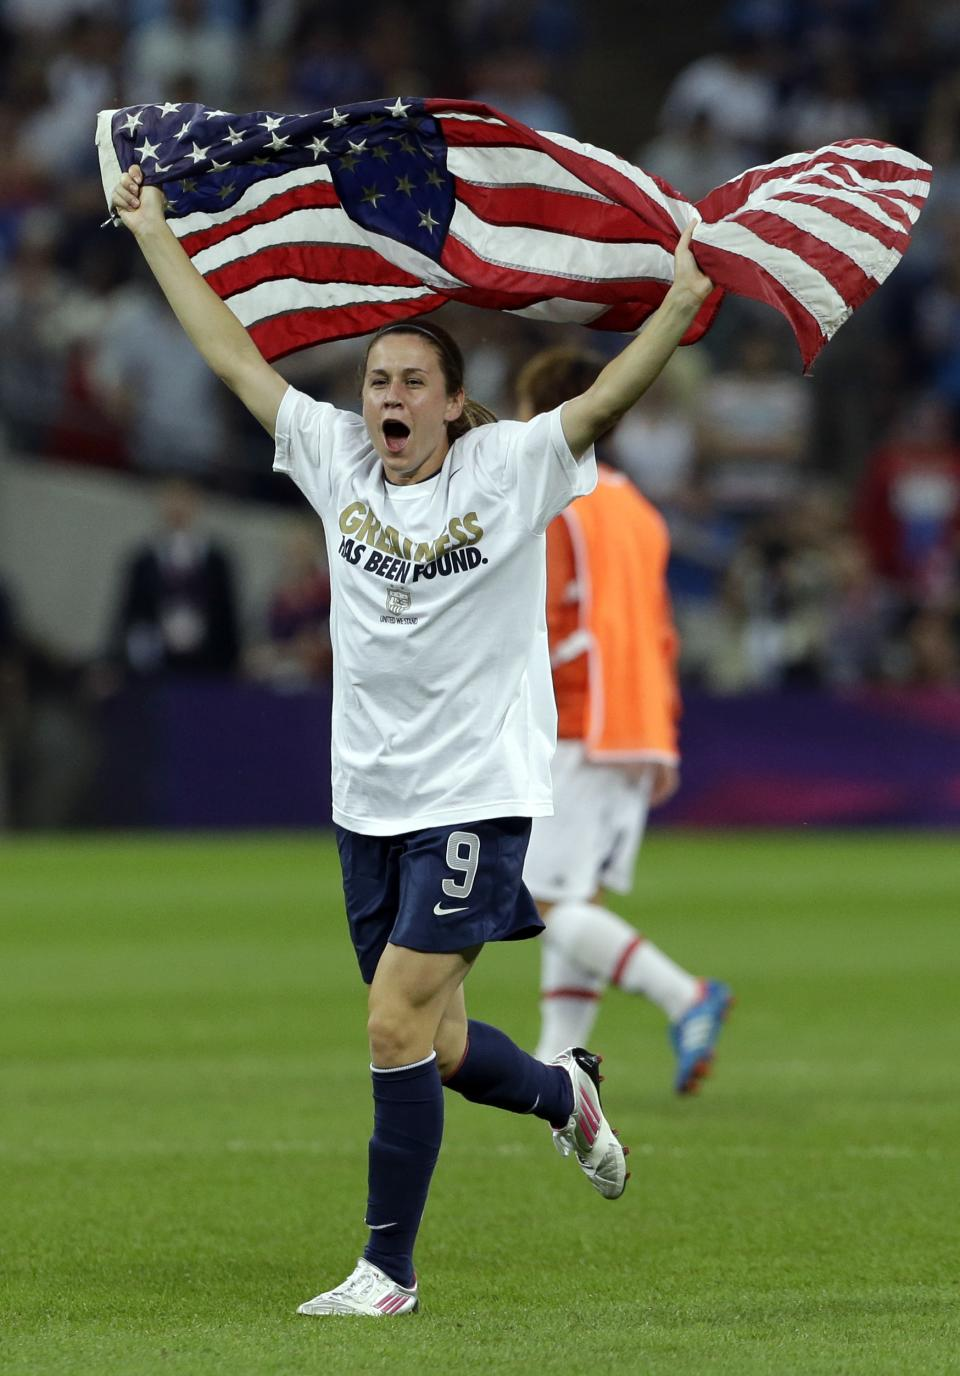 United States' Heather O'Reilly celebrates after winning the women's soccer gold medal match against Japan at the 2012 Summer Olympics, Thursday, Aug. 9, 2012, in London. (AP Photo/Ben Curtis)